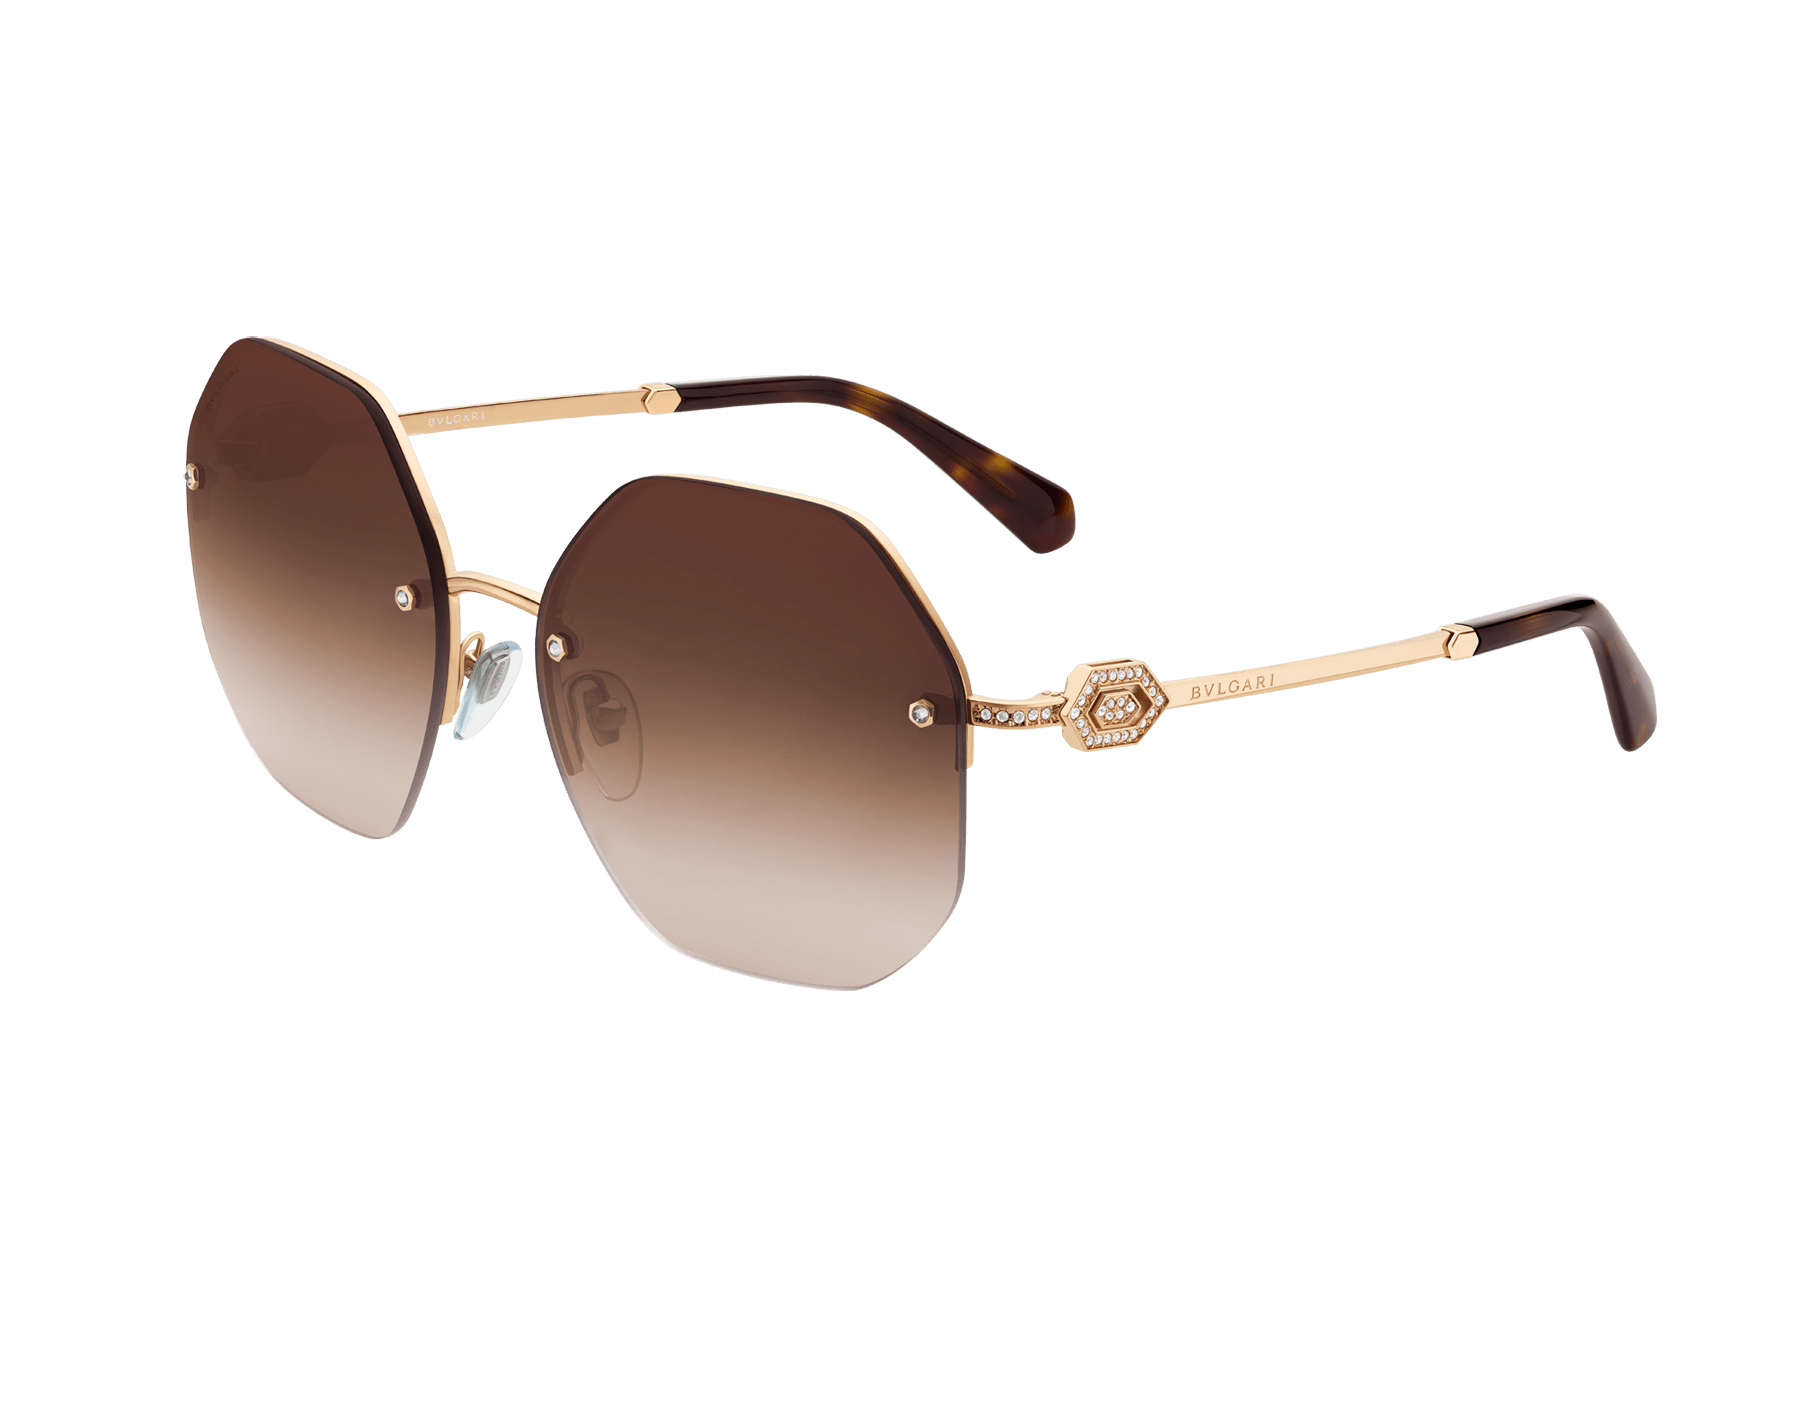 Bvlgari Serpenti oversized metal sunglasses with Serpenti openwork metal décor with crystals. 903854 image 1